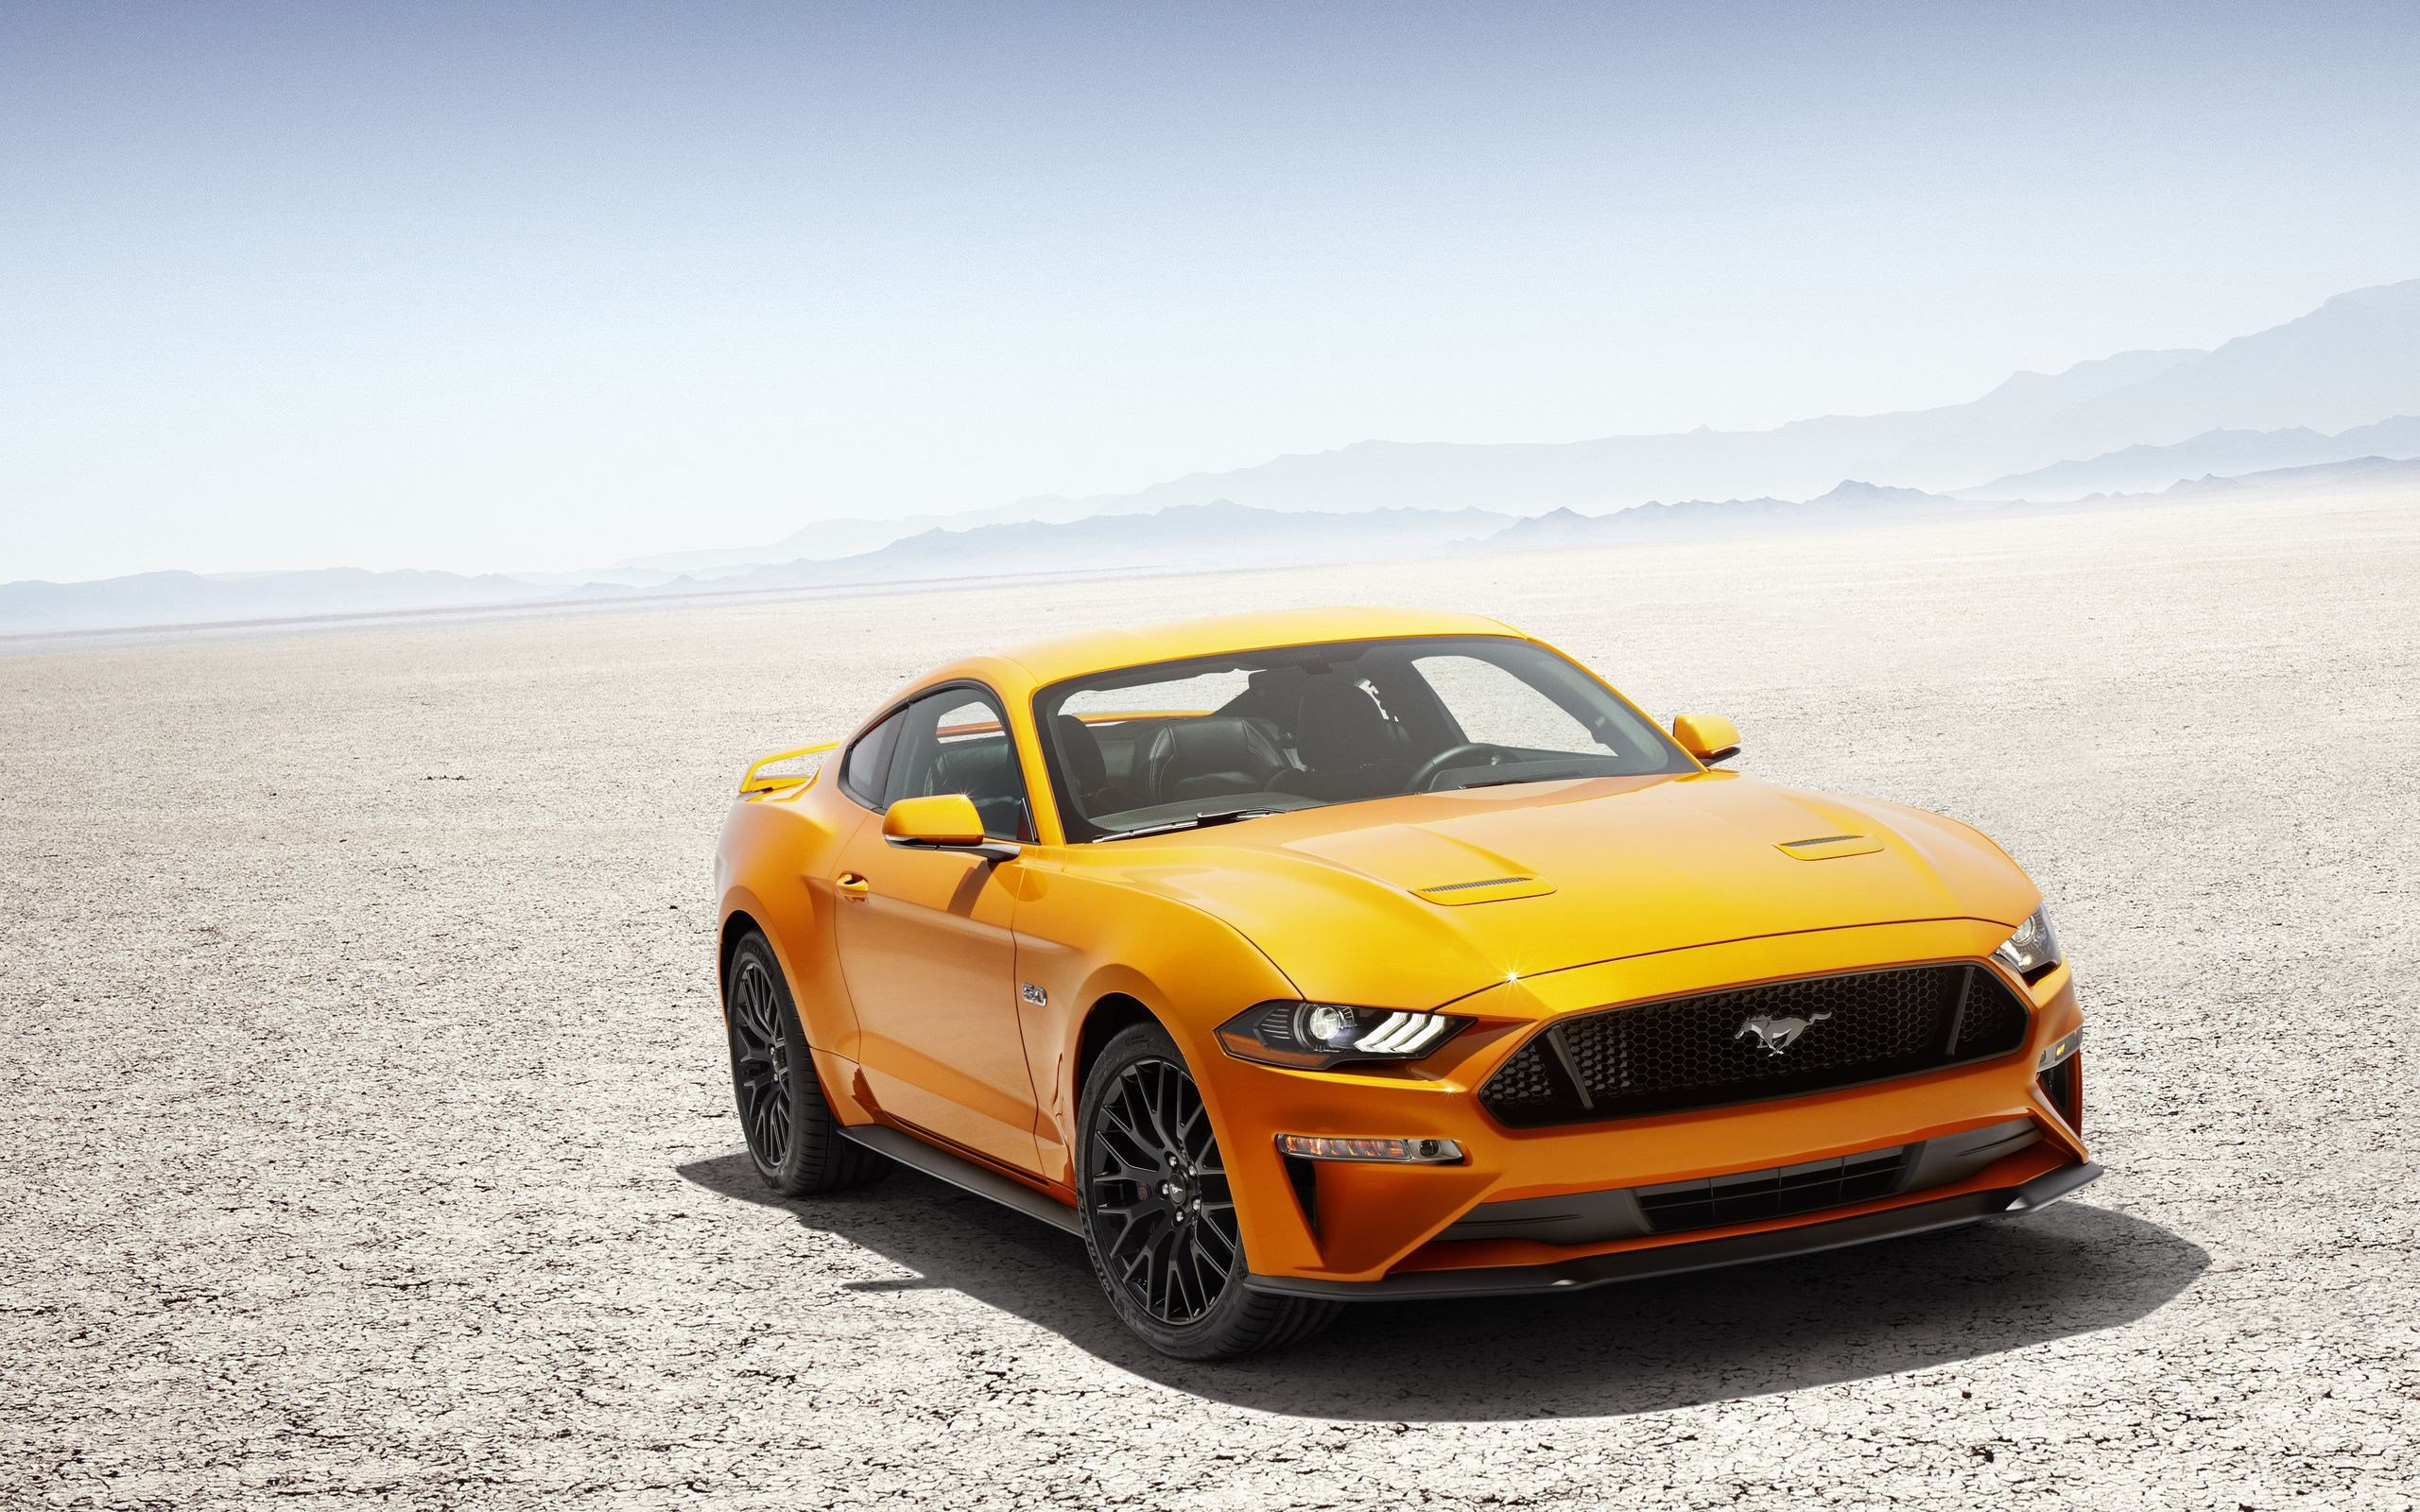 Latest Ford Mustang V8 Gt 2018 Wallpapers Hd Wallpapers Id 19584 Free Download